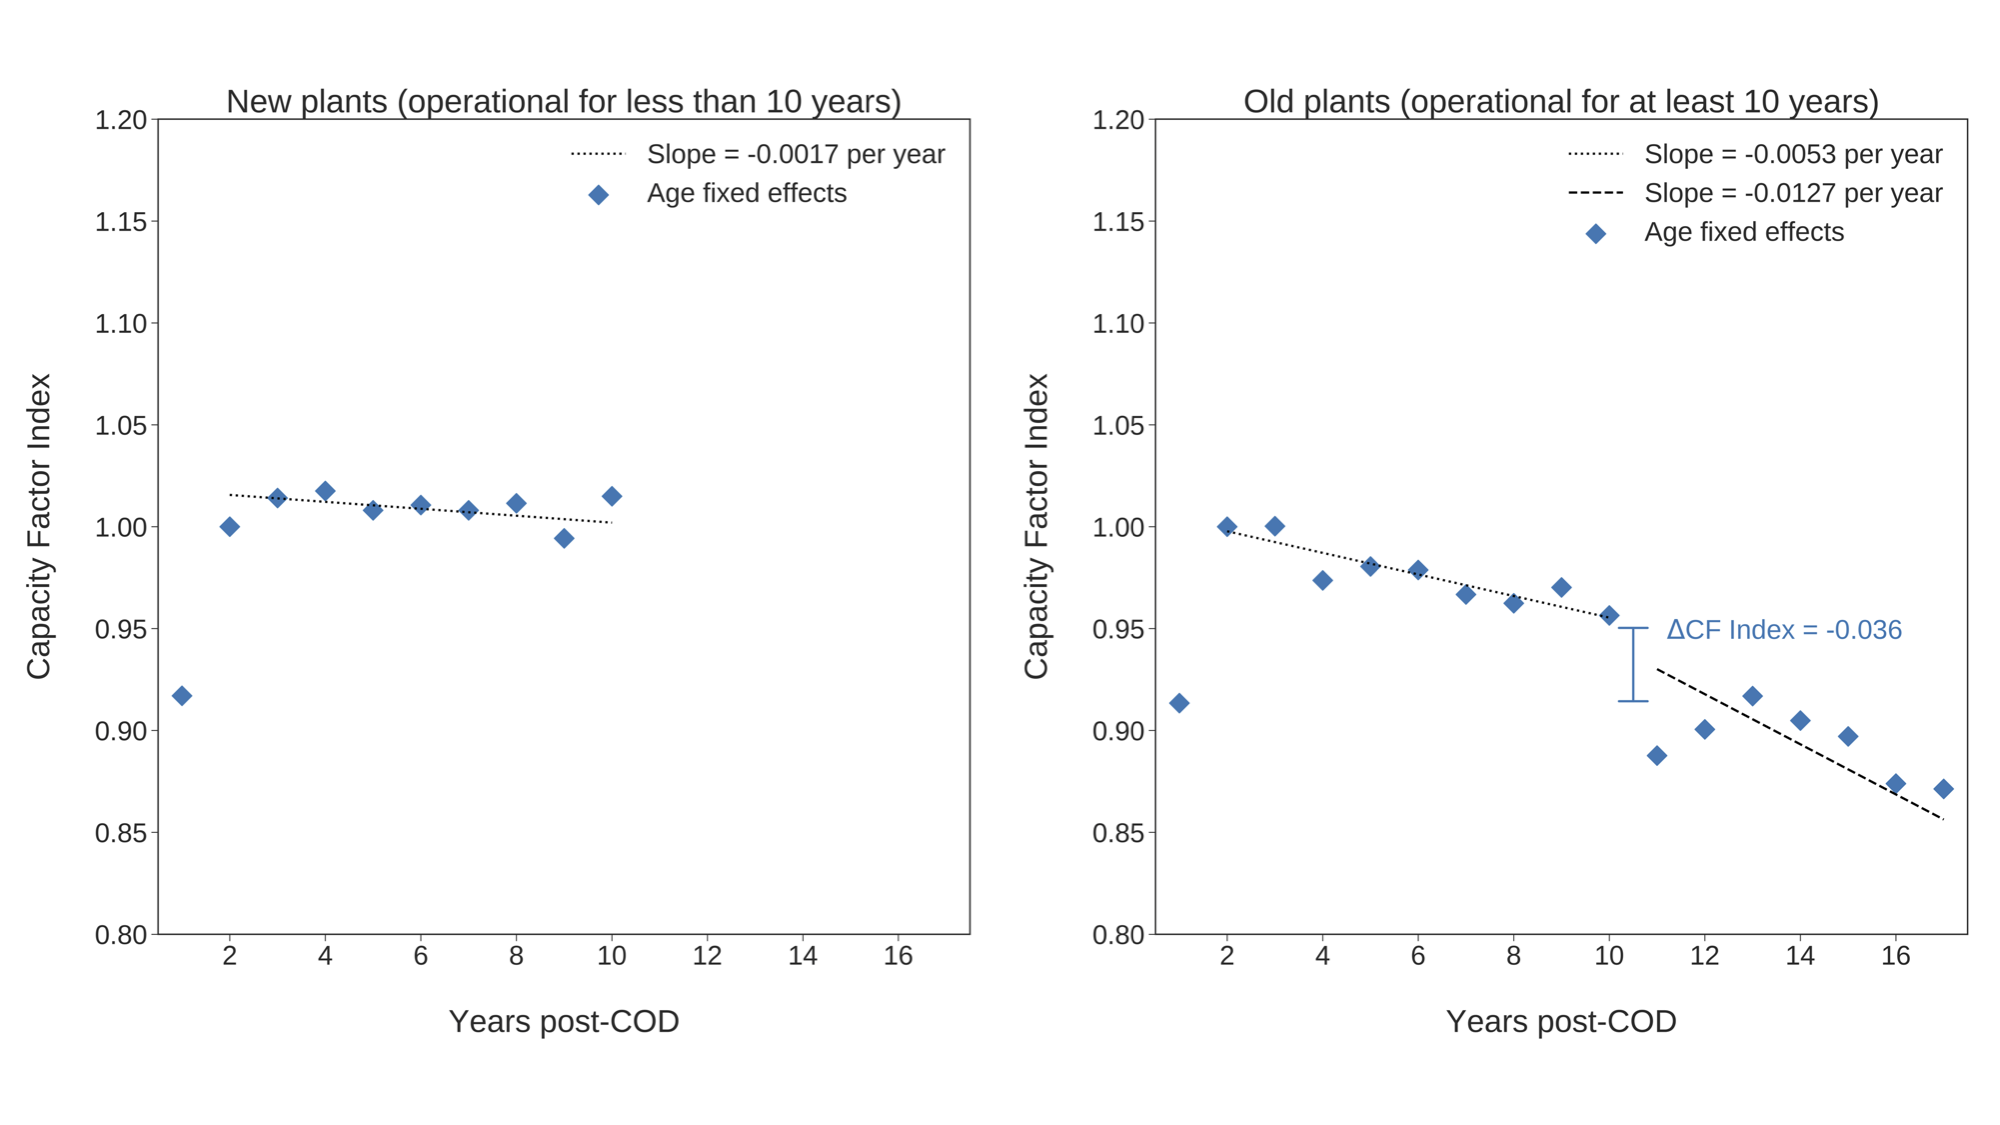 Average decline in performance with age for two cohorts of plants. COD stands for commercial online date. The y-axis can be interpreted as a ratio of performance to year 2, so, for example, a value of 0.95 indicates that a plant produced 95% of the energy in a particular year compared to year 2 of life.